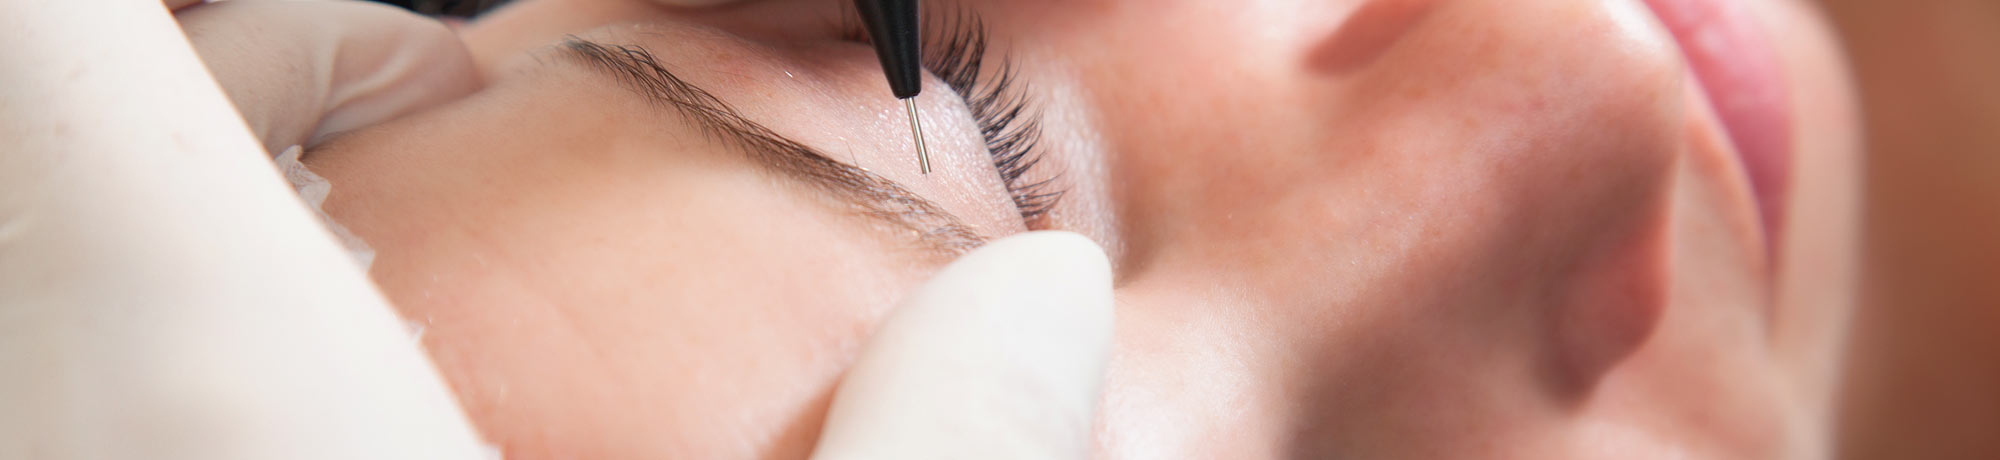 Typgerechtes Make-Up - Professionelles Permanent Mak-Up & Microblading bei i Spa Nails in Hannover